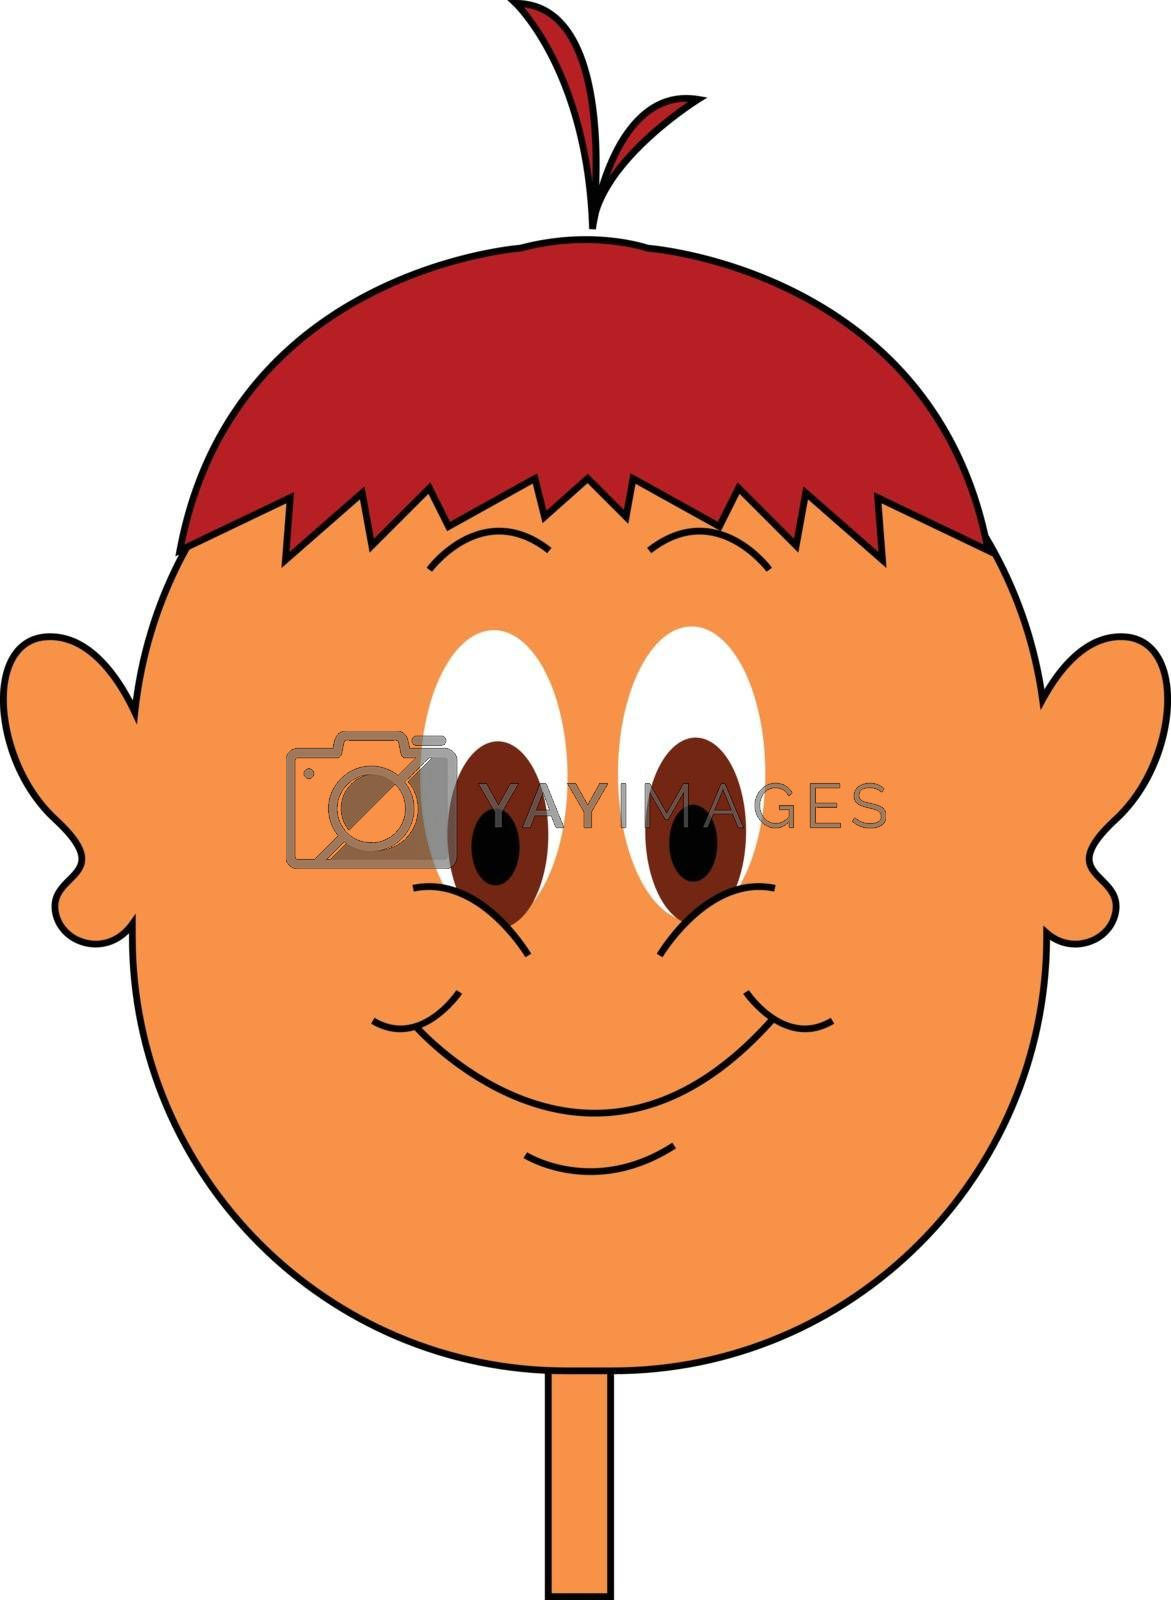 Royalty free image of Clipart of a boy with red hair color vector or color illustratio by Morphart